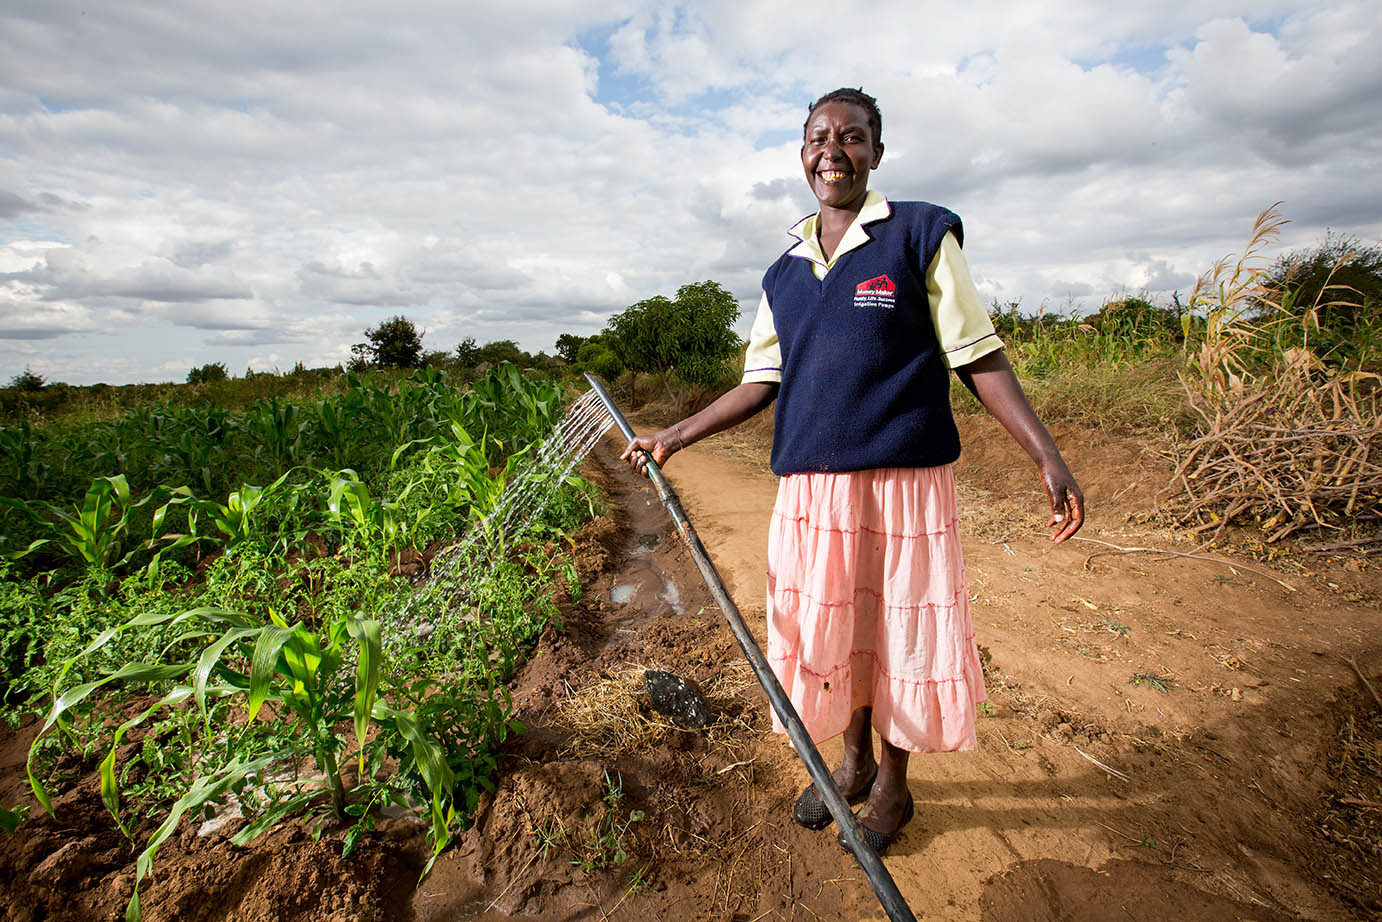 Women holding hose and watering crops while smiling.